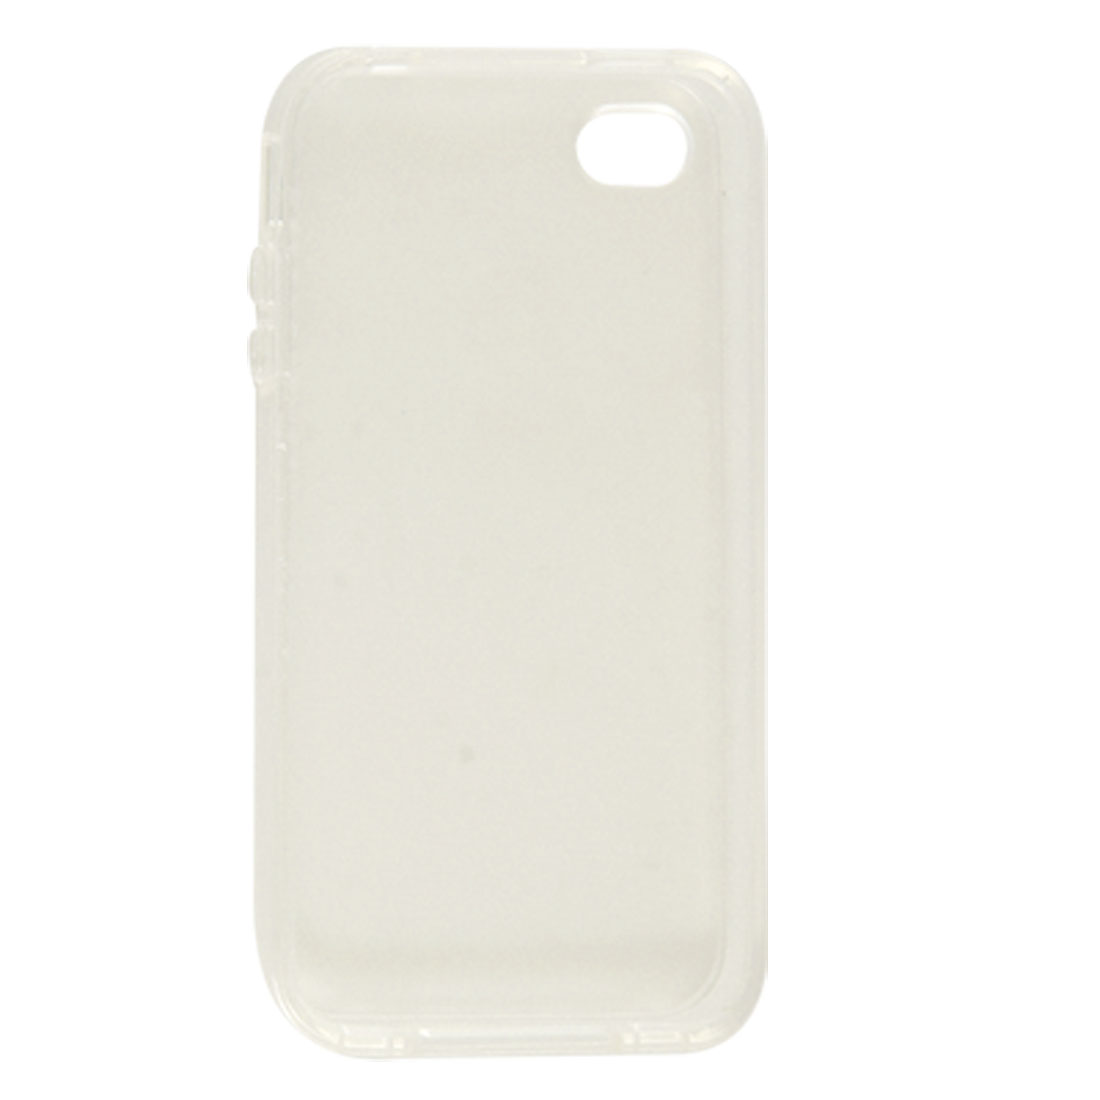 Protective Smooth Soft Platic Cover Clear White for iPhone 4 4G